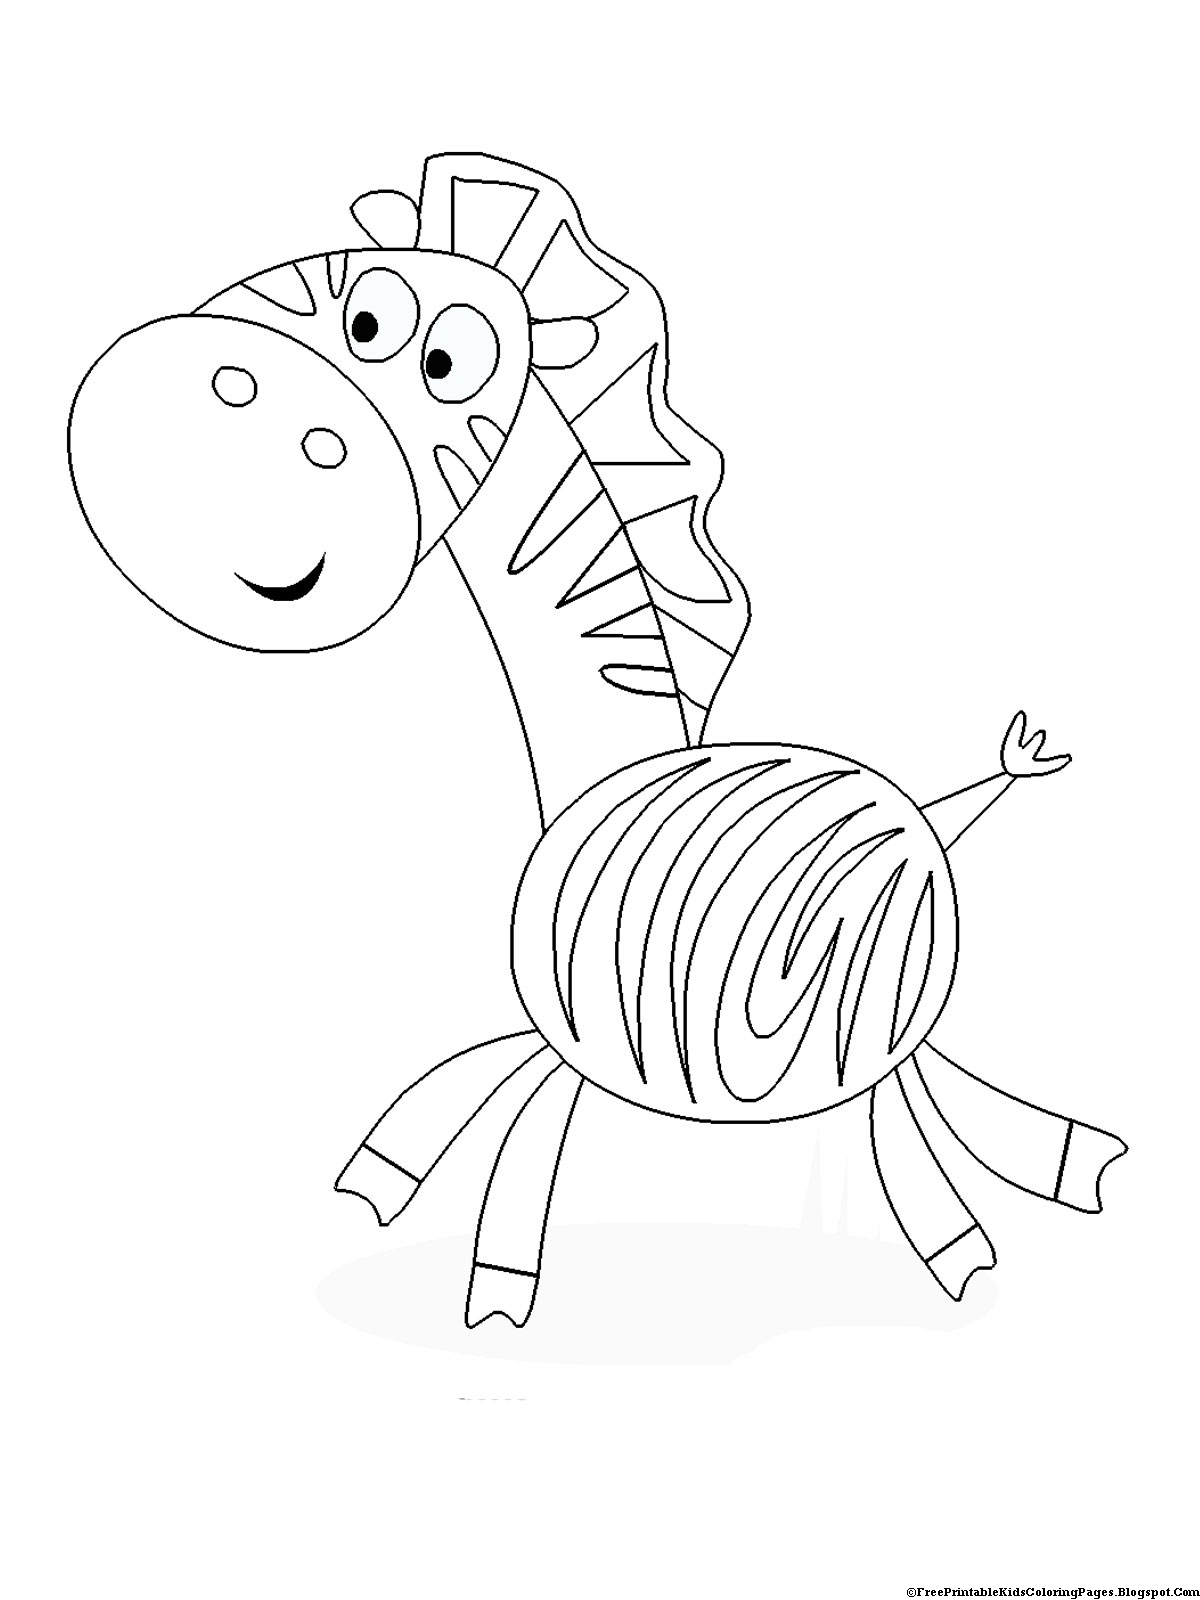 printable watercolor pages zebra coloring pages free printable kids coloring pages printable watercolor pages